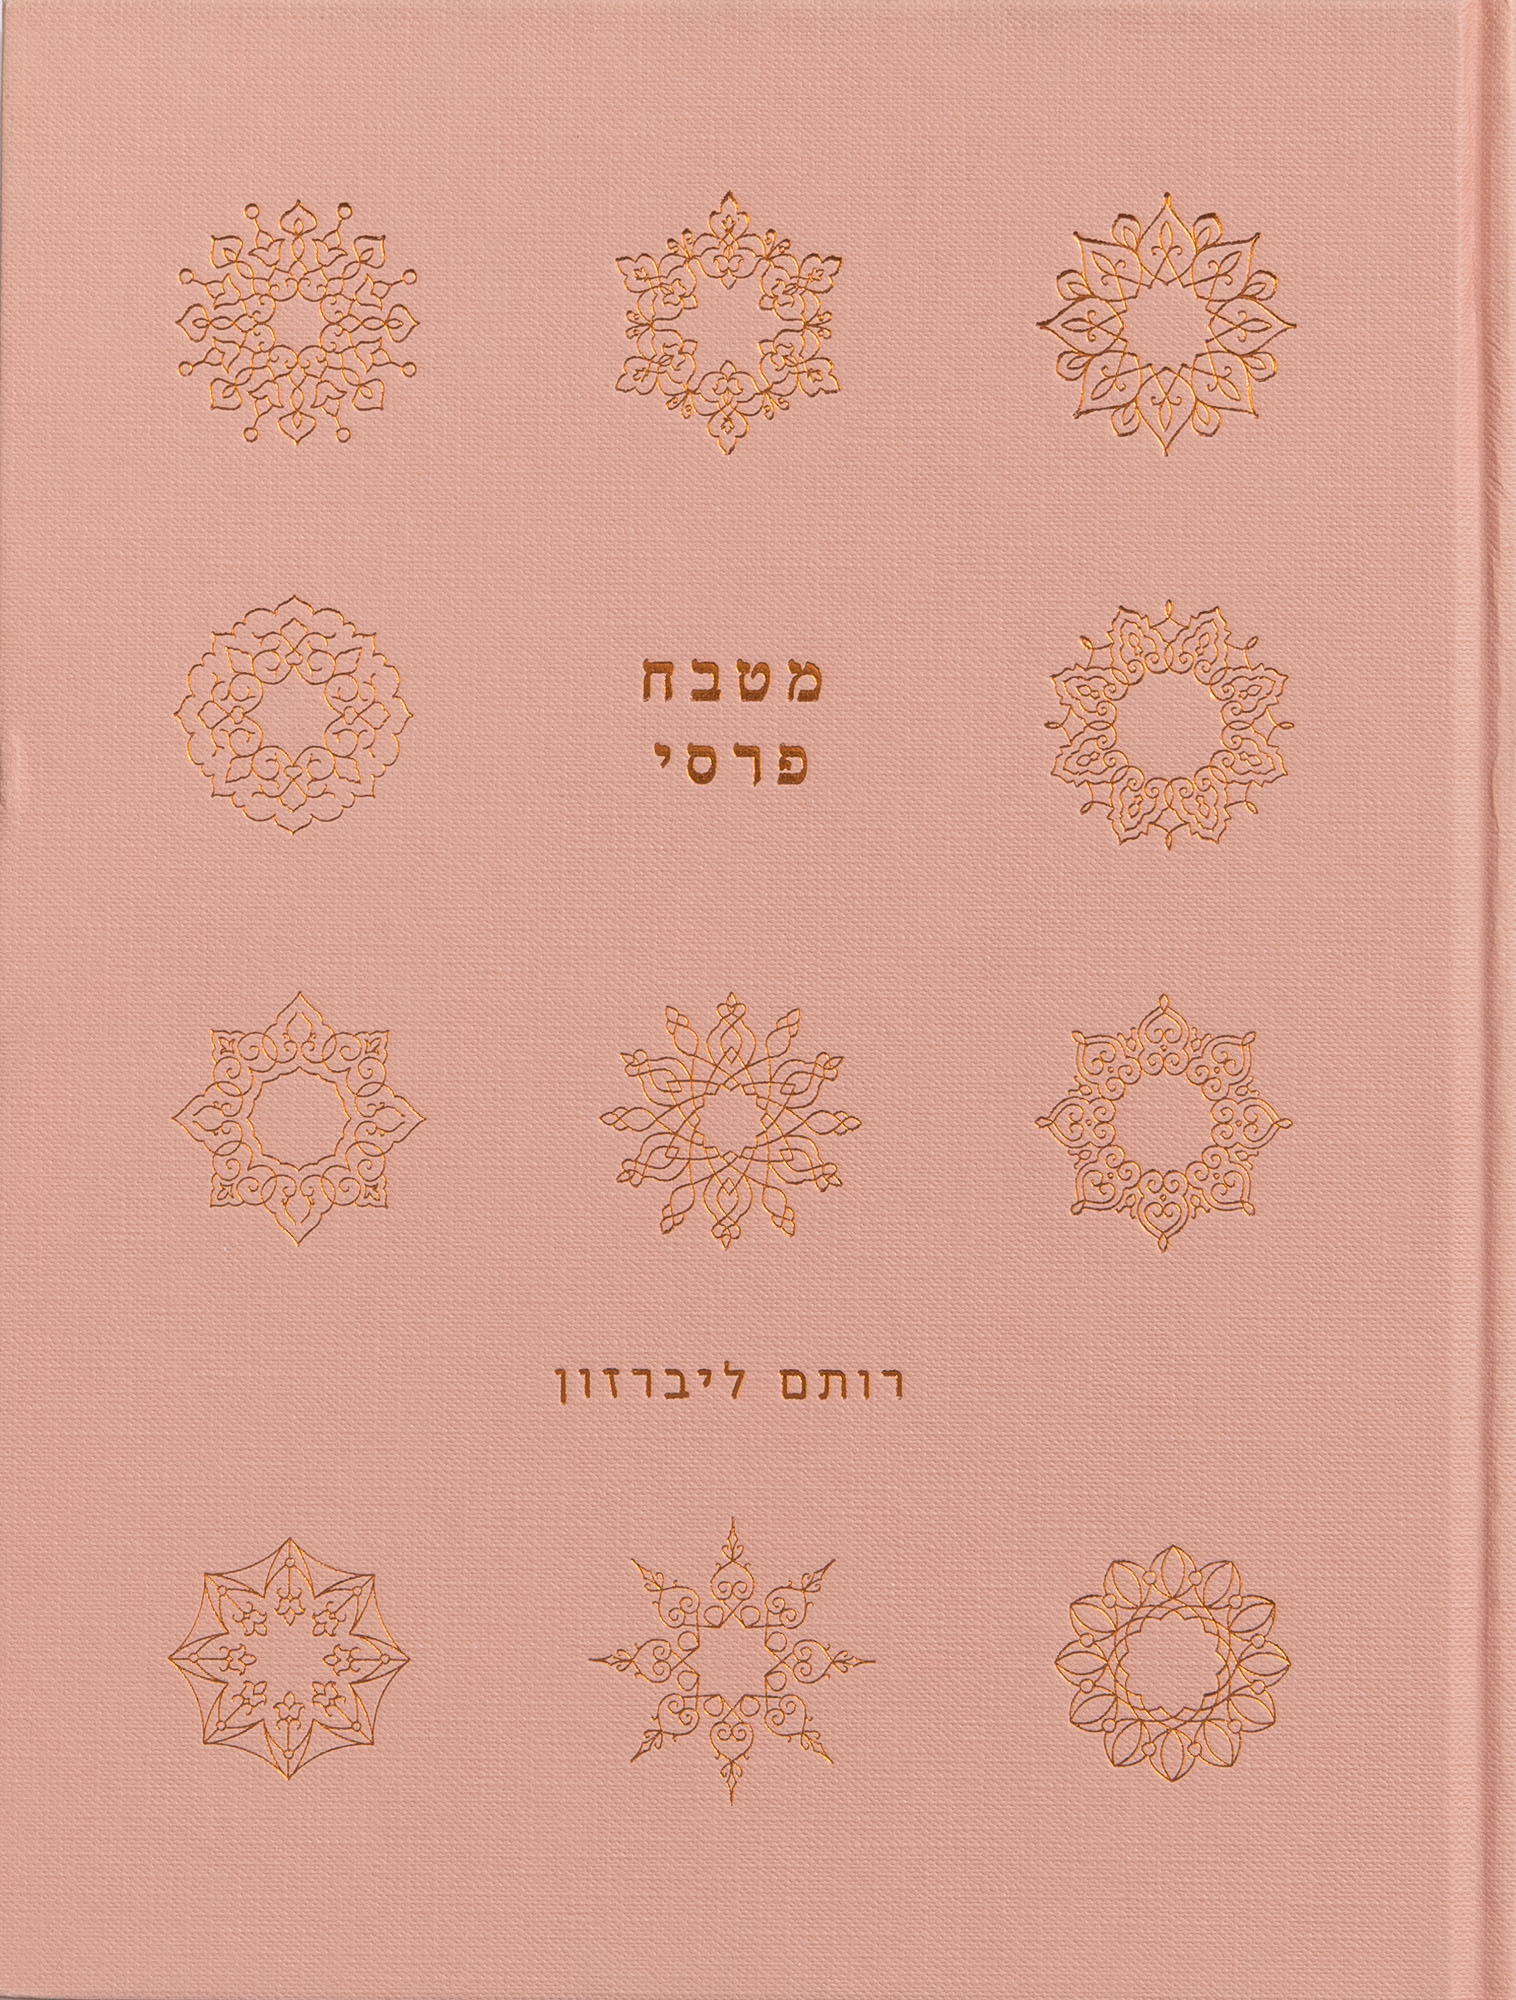 The cover of the Hebrew-language cookbook a Persian Kitchen by Rottem Lieberson